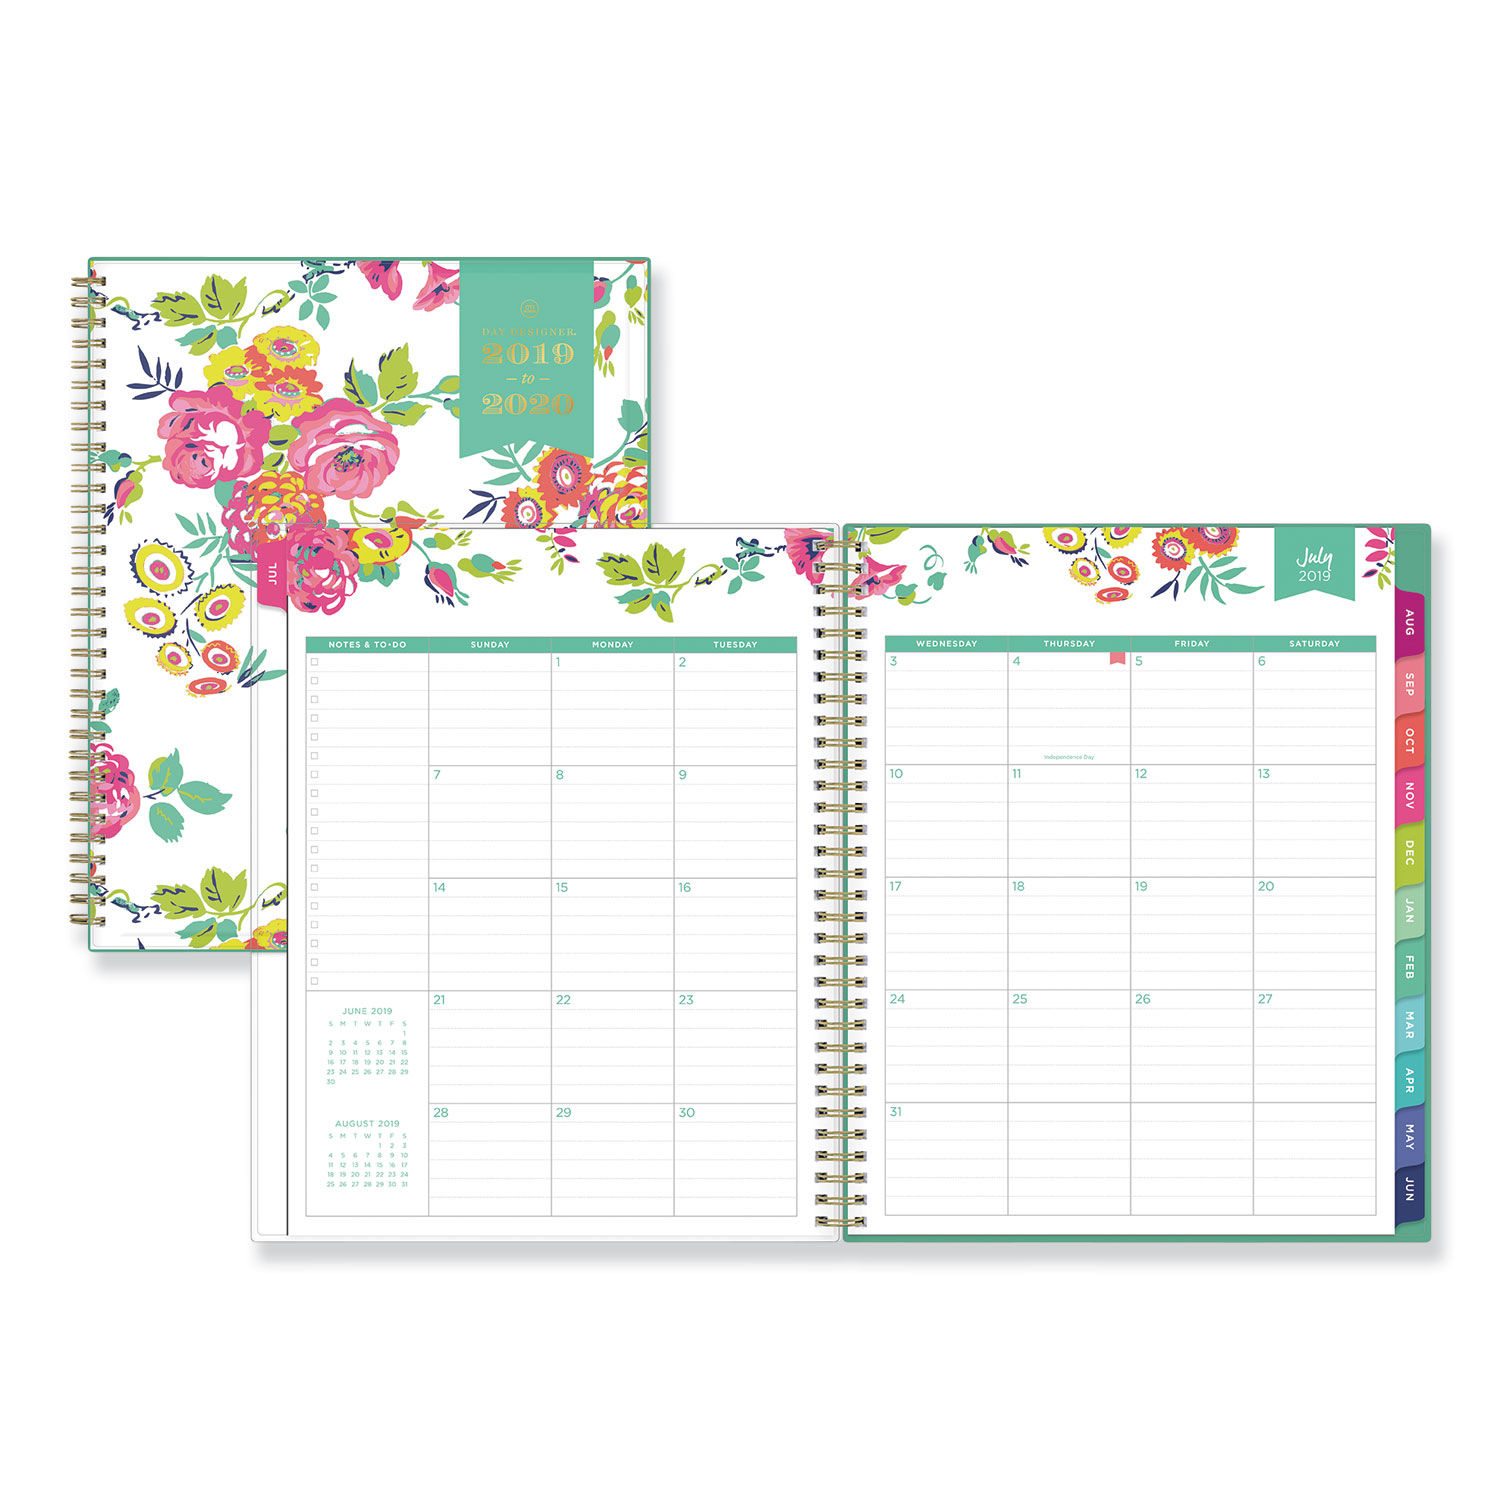 picture about Day Designer Planners called Working day Designer Educational Calendar year CYO Weekly/Month to month Planner, 11 x 8 1/2, White/Floral, 2019-2020